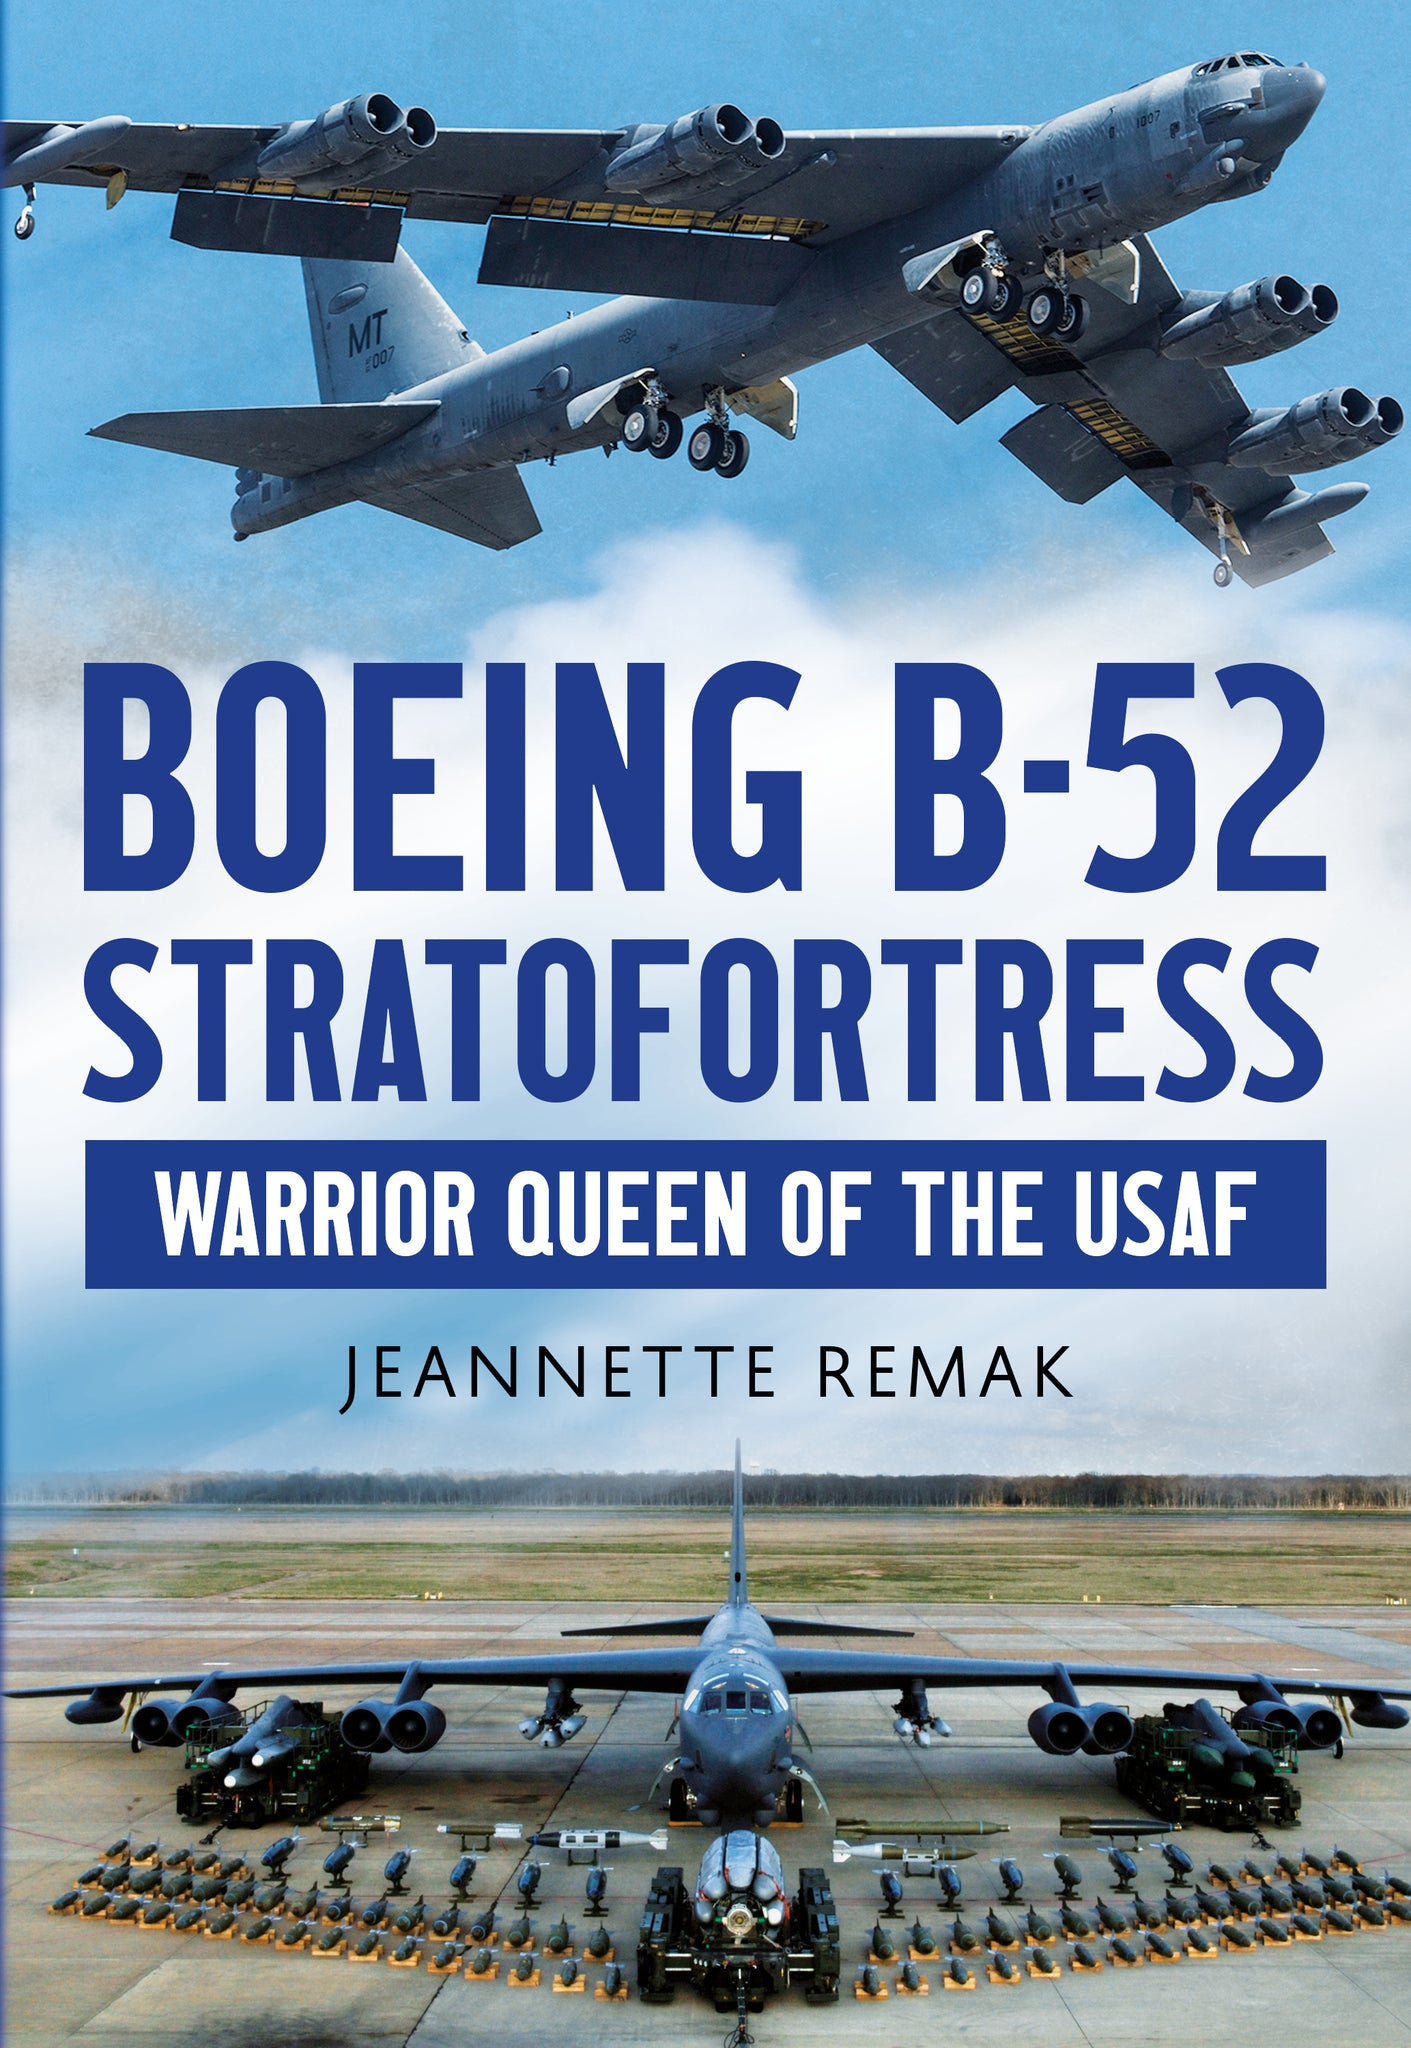 Boeing B-52 Stratofortress: Warrior Queen of the USAF - published by Fonthill Media